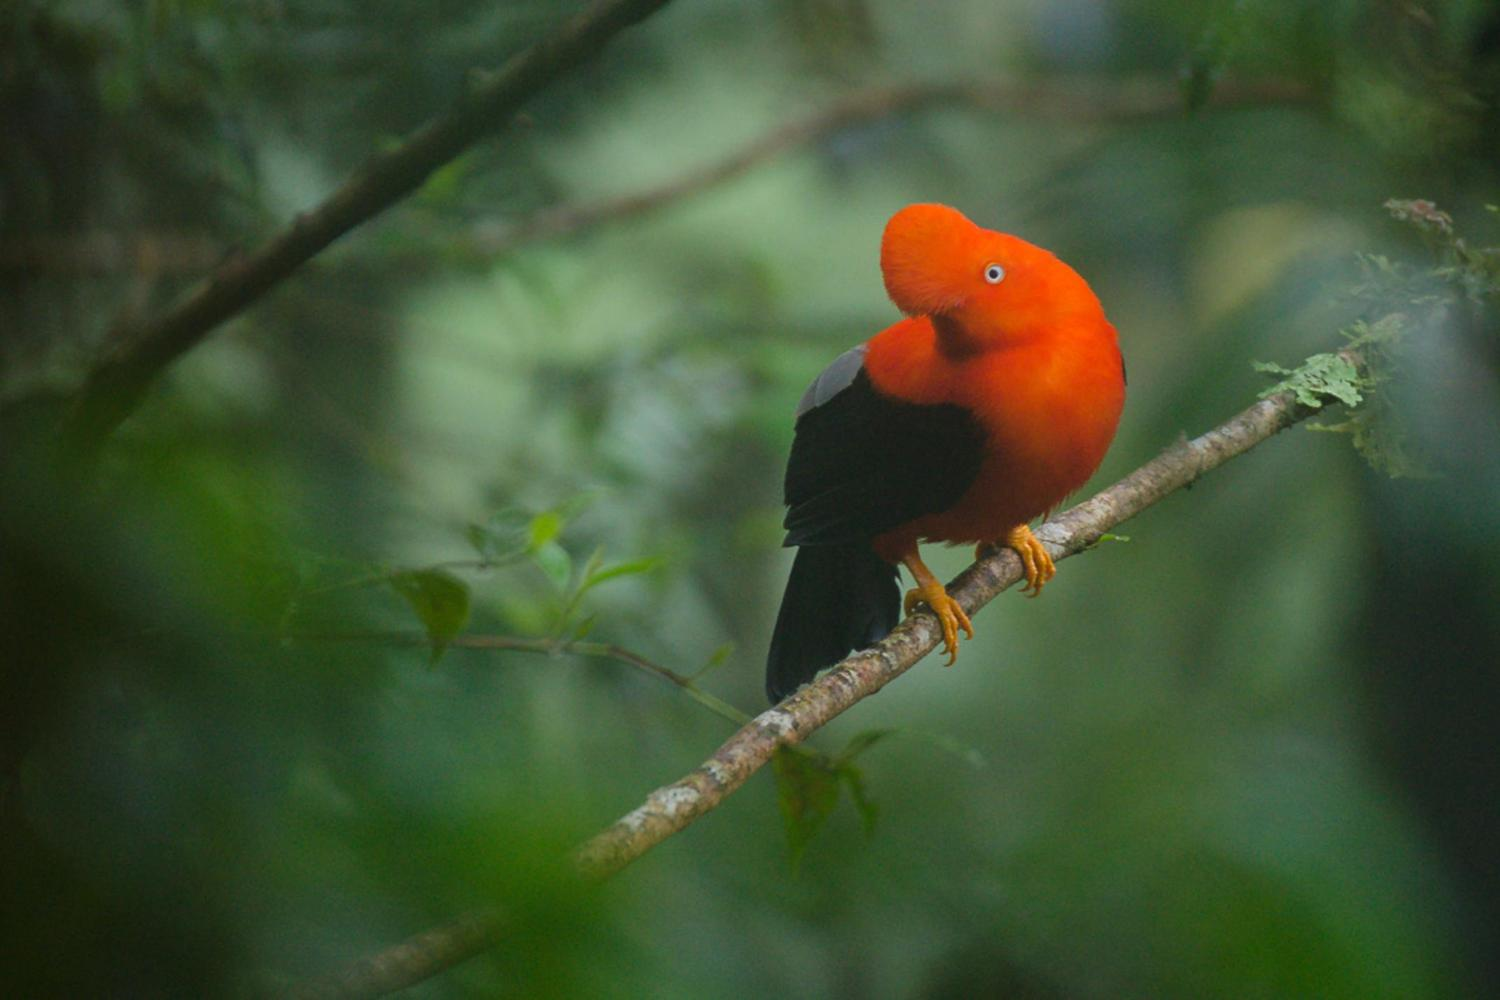 Peru's national bird, the Cock of the Rock, is often seen in Manu's cloudforest